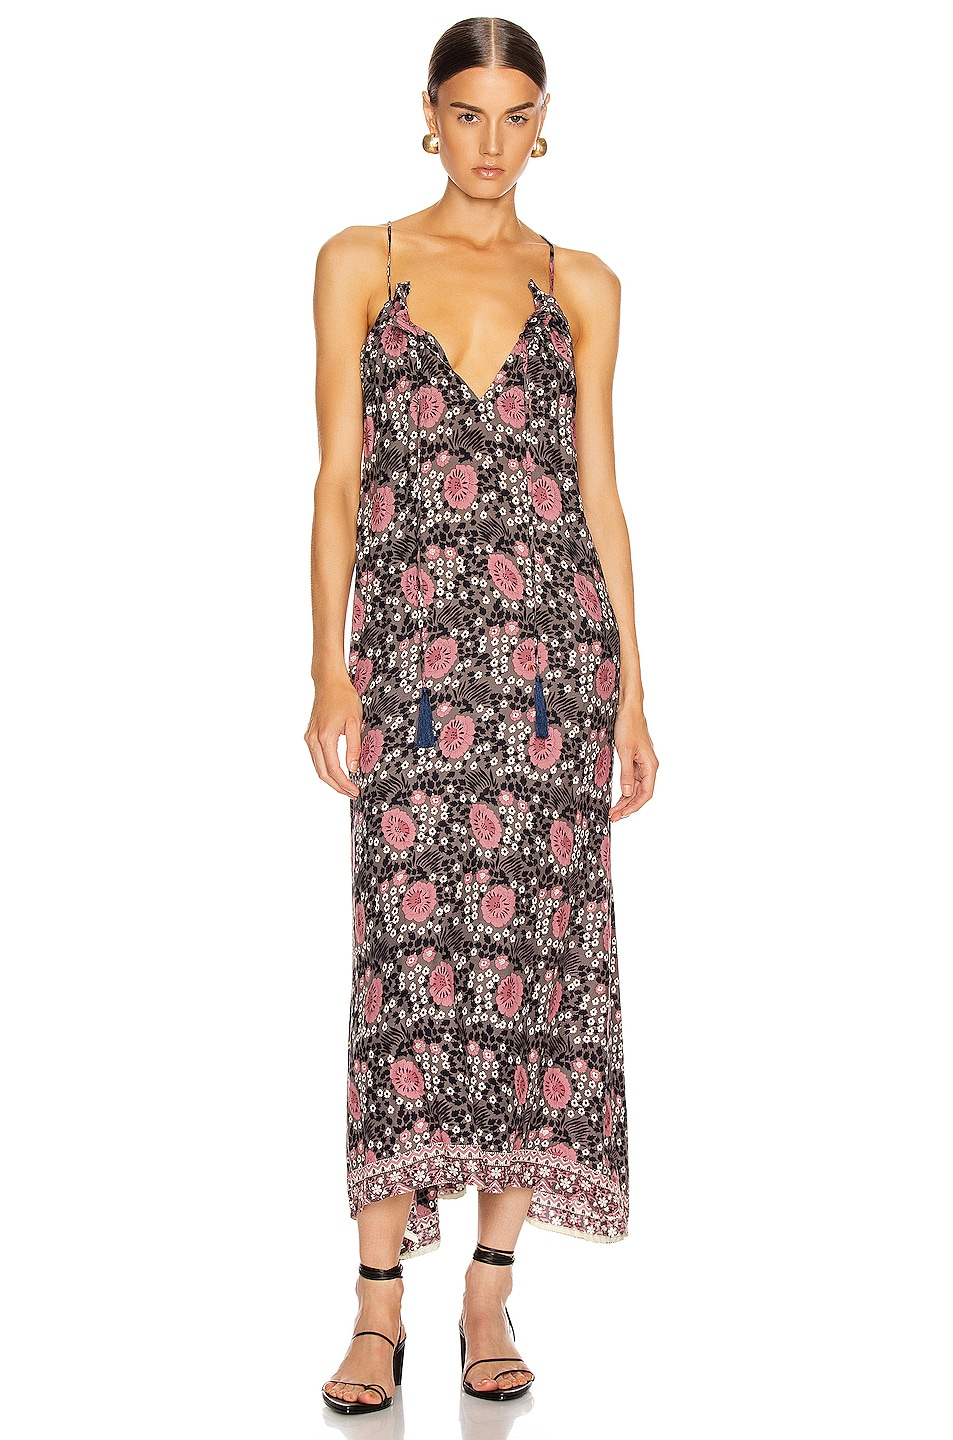 Image 1 of Natalie Martin Marlien Maxi Dress in Vintage Flowers Violet